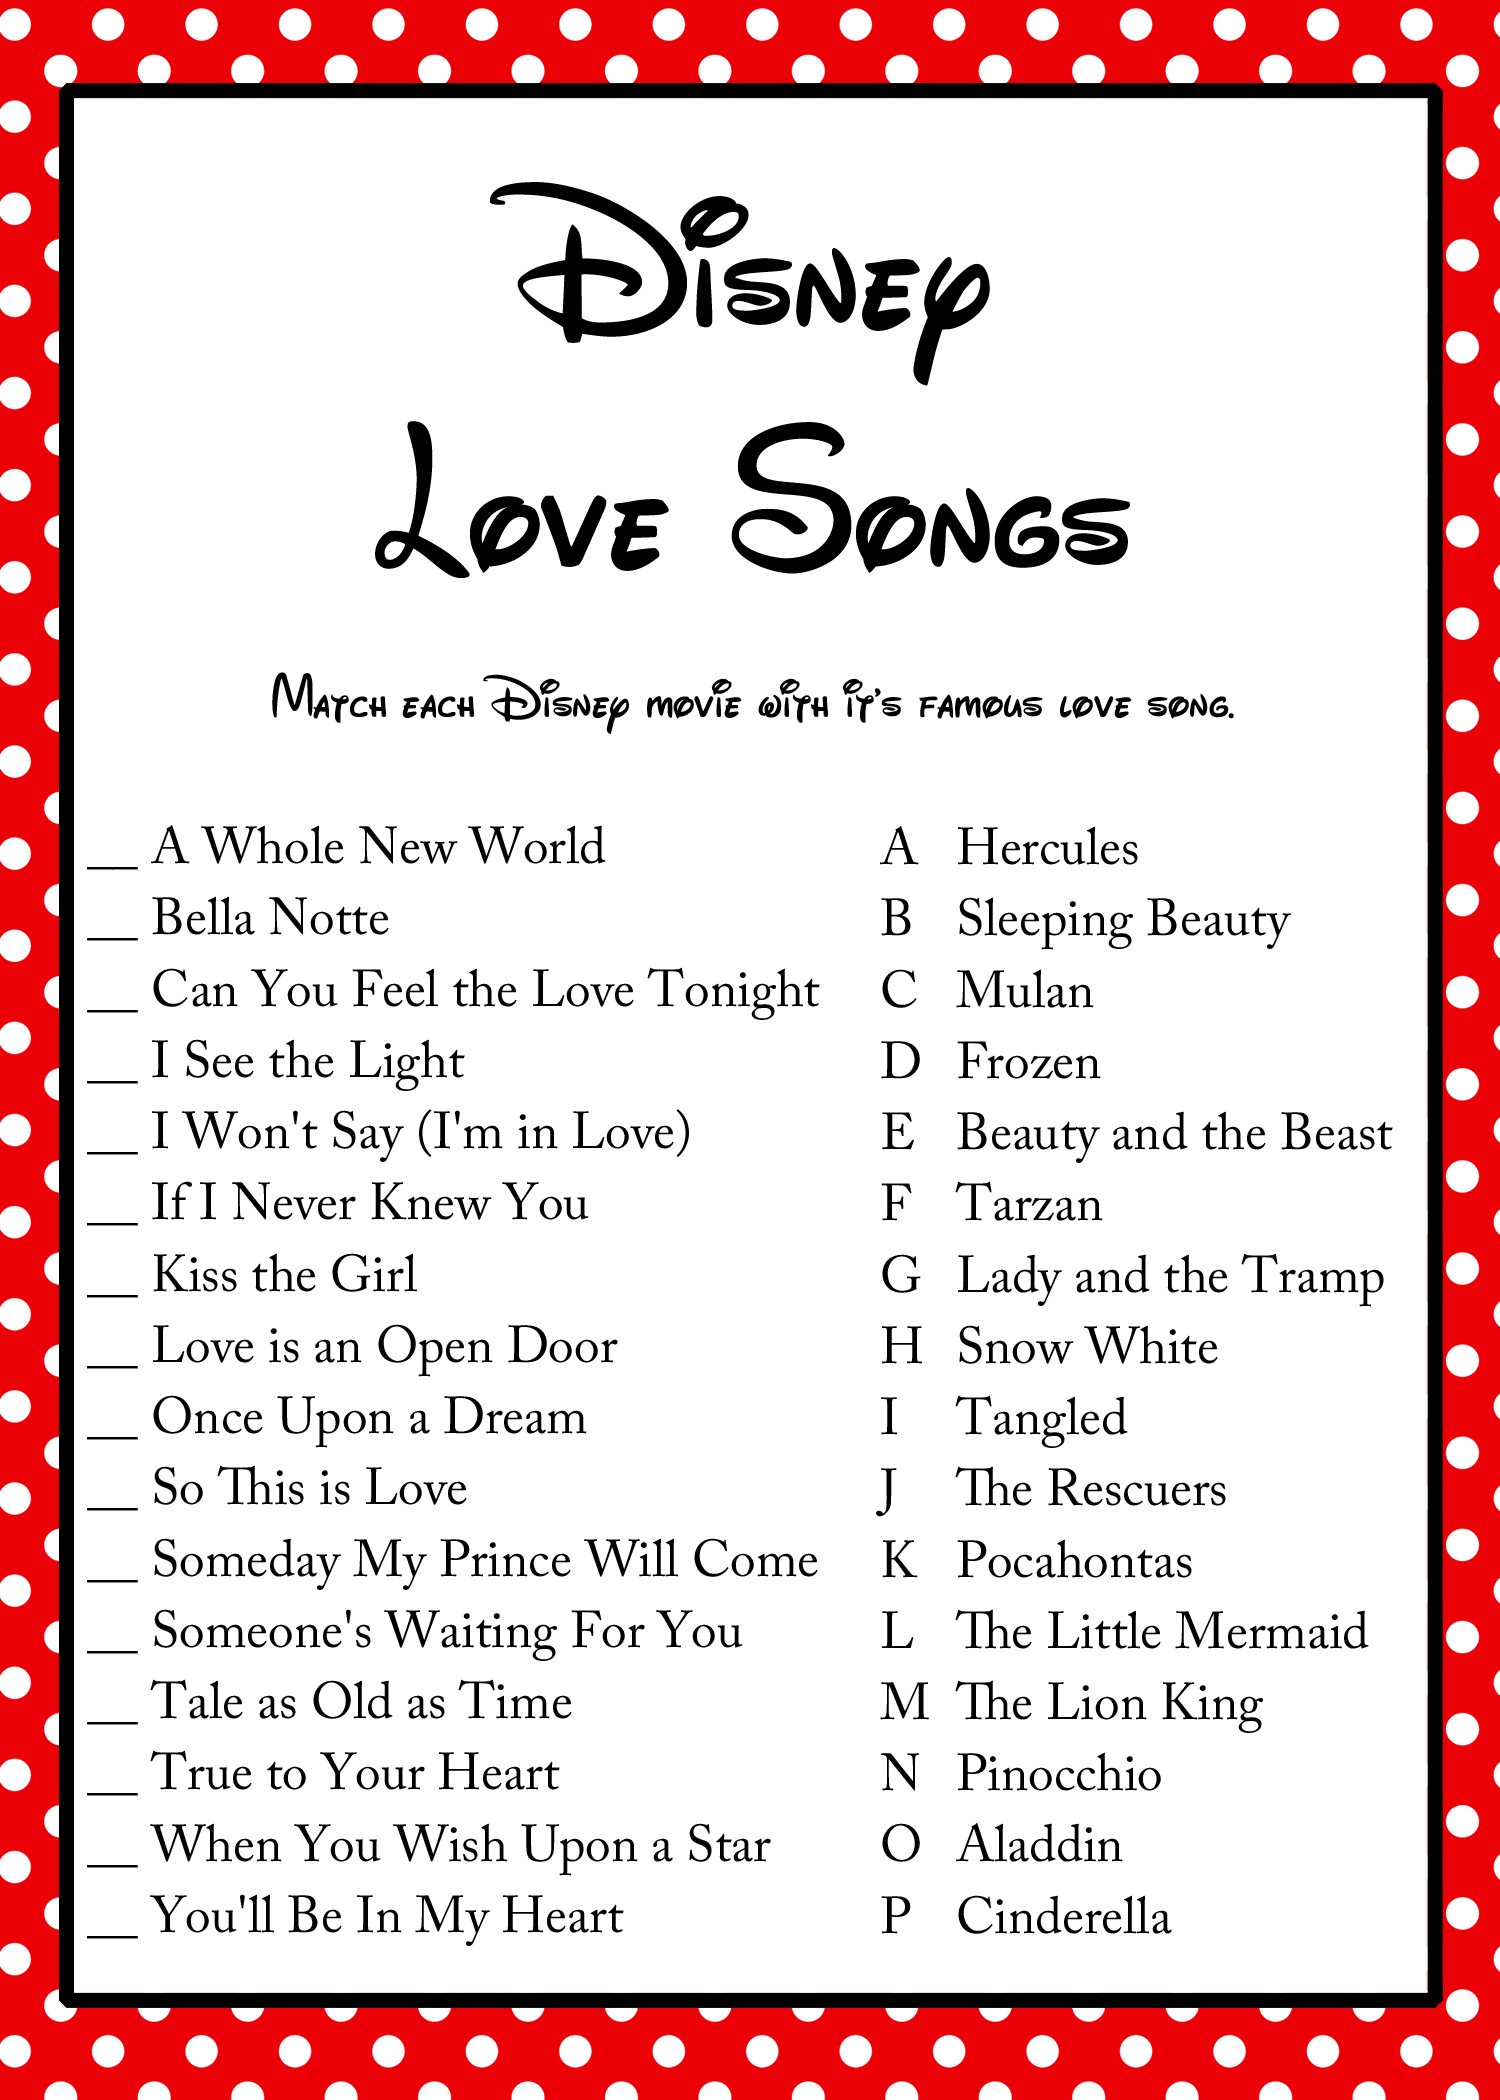 FREE Disney Love Song Bridal Shower Game - Bridal Shower ...